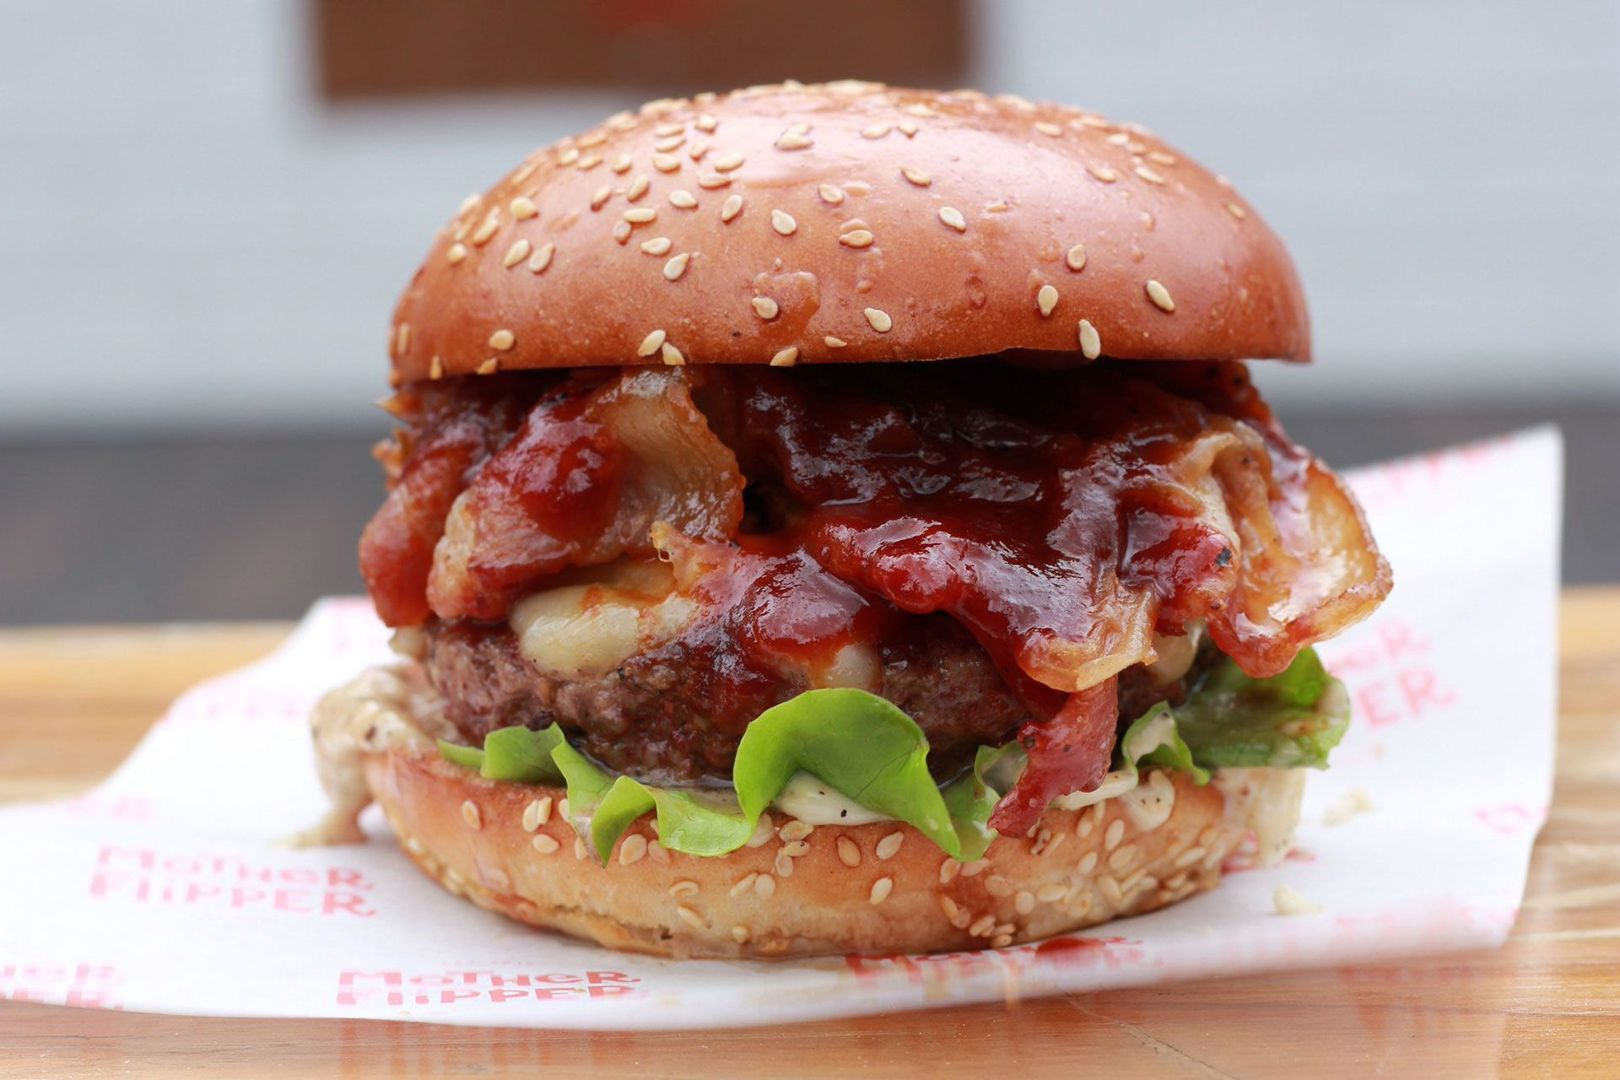 Burger lovers, listen up - here's where to find the best buns in London: https://t.co/Nf07kSZPWN https://t.co/3uxFkTP1ut